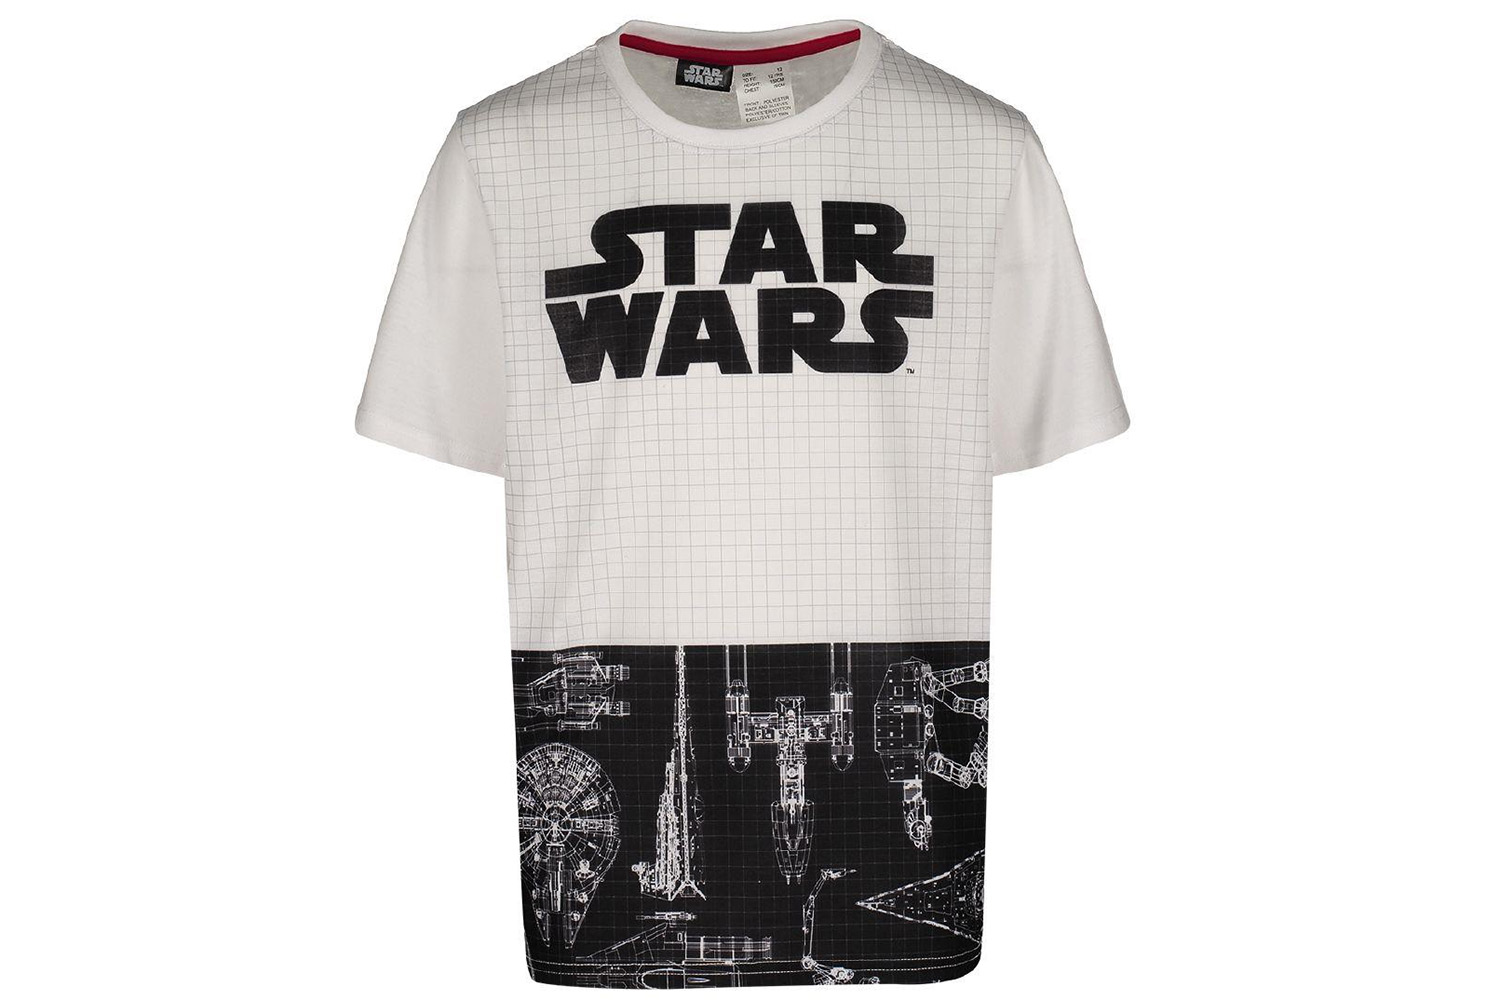 Design t shirt new zealand - The Warehouse Has Added A Couple Of New Kid S Star Wars T Shirt Designs Available In Store Or Online Both Appear On Their Website As Geo Trooper Tees